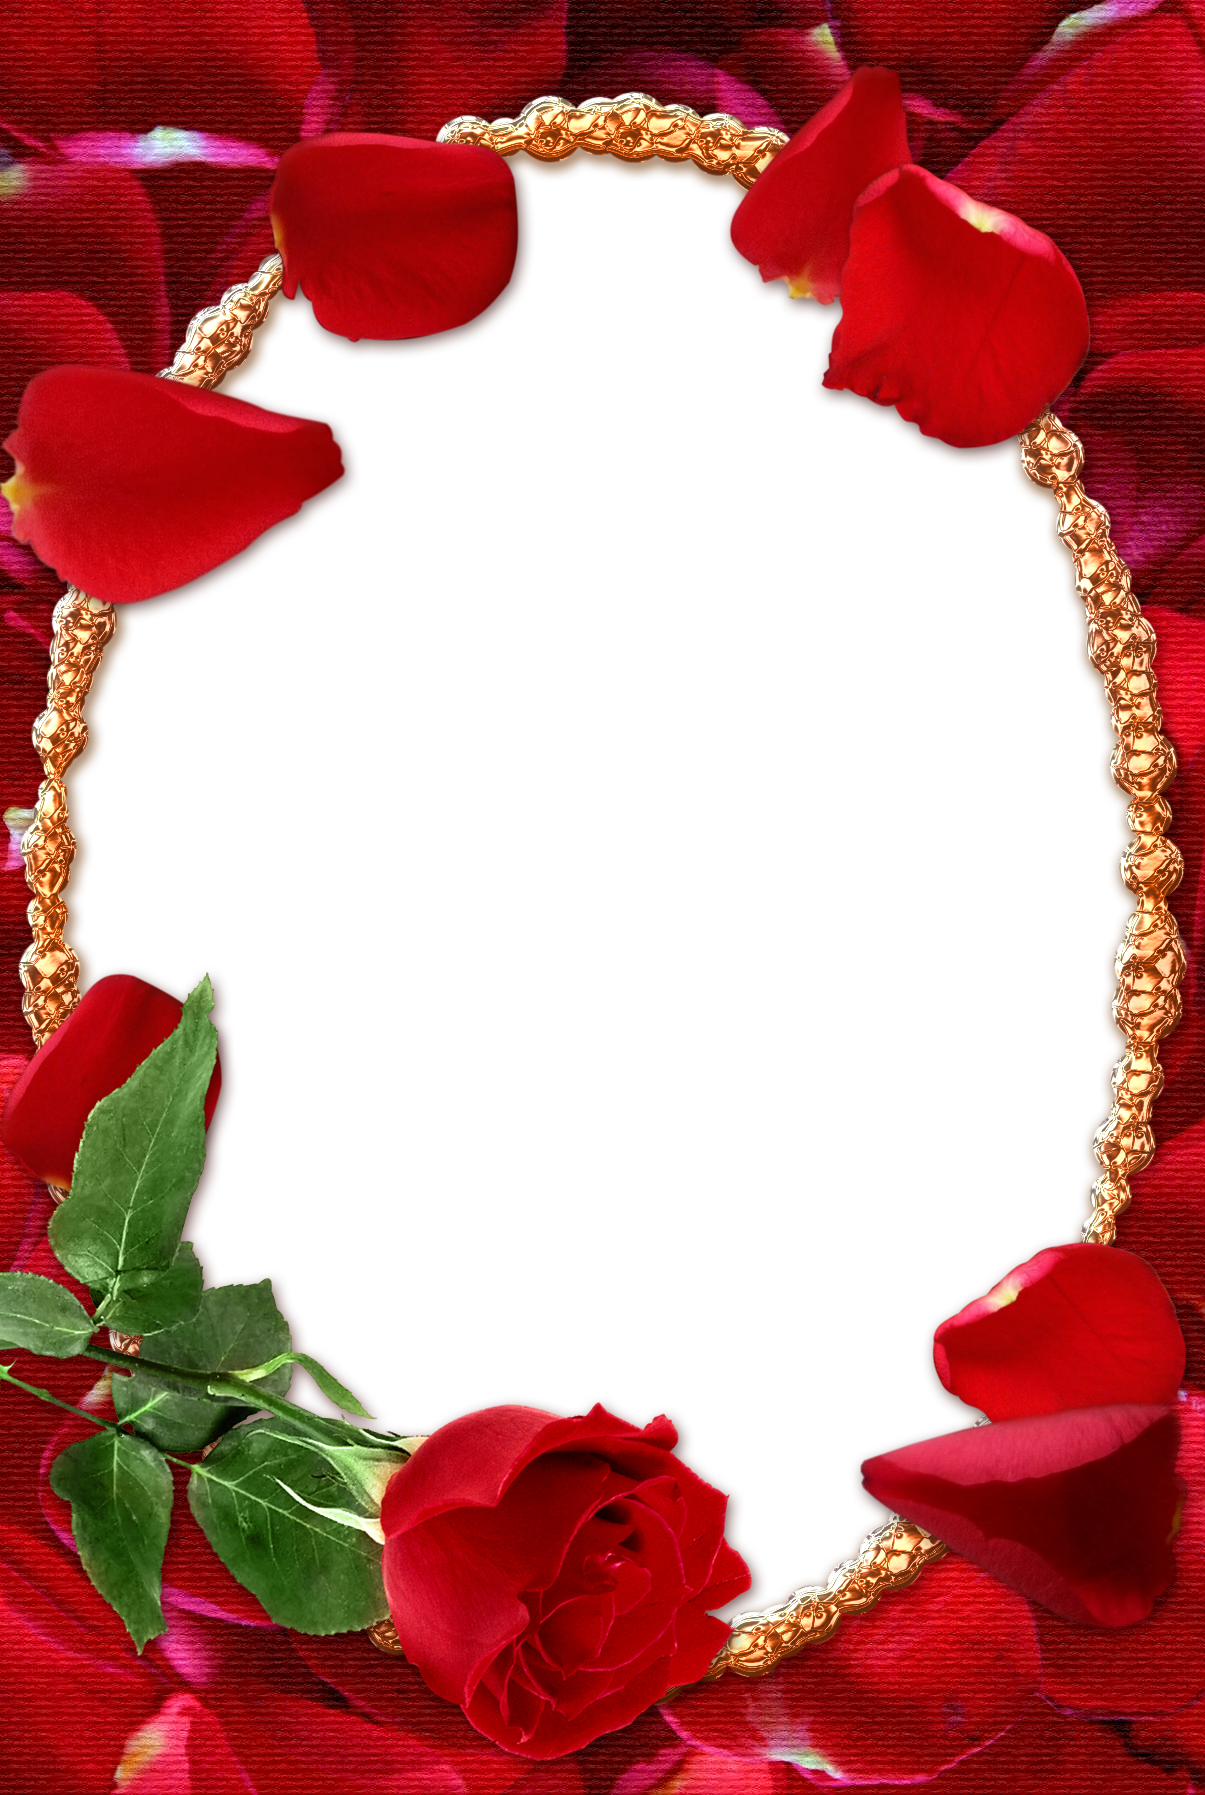 Transparent gallery yopriceville high. Rose frame png